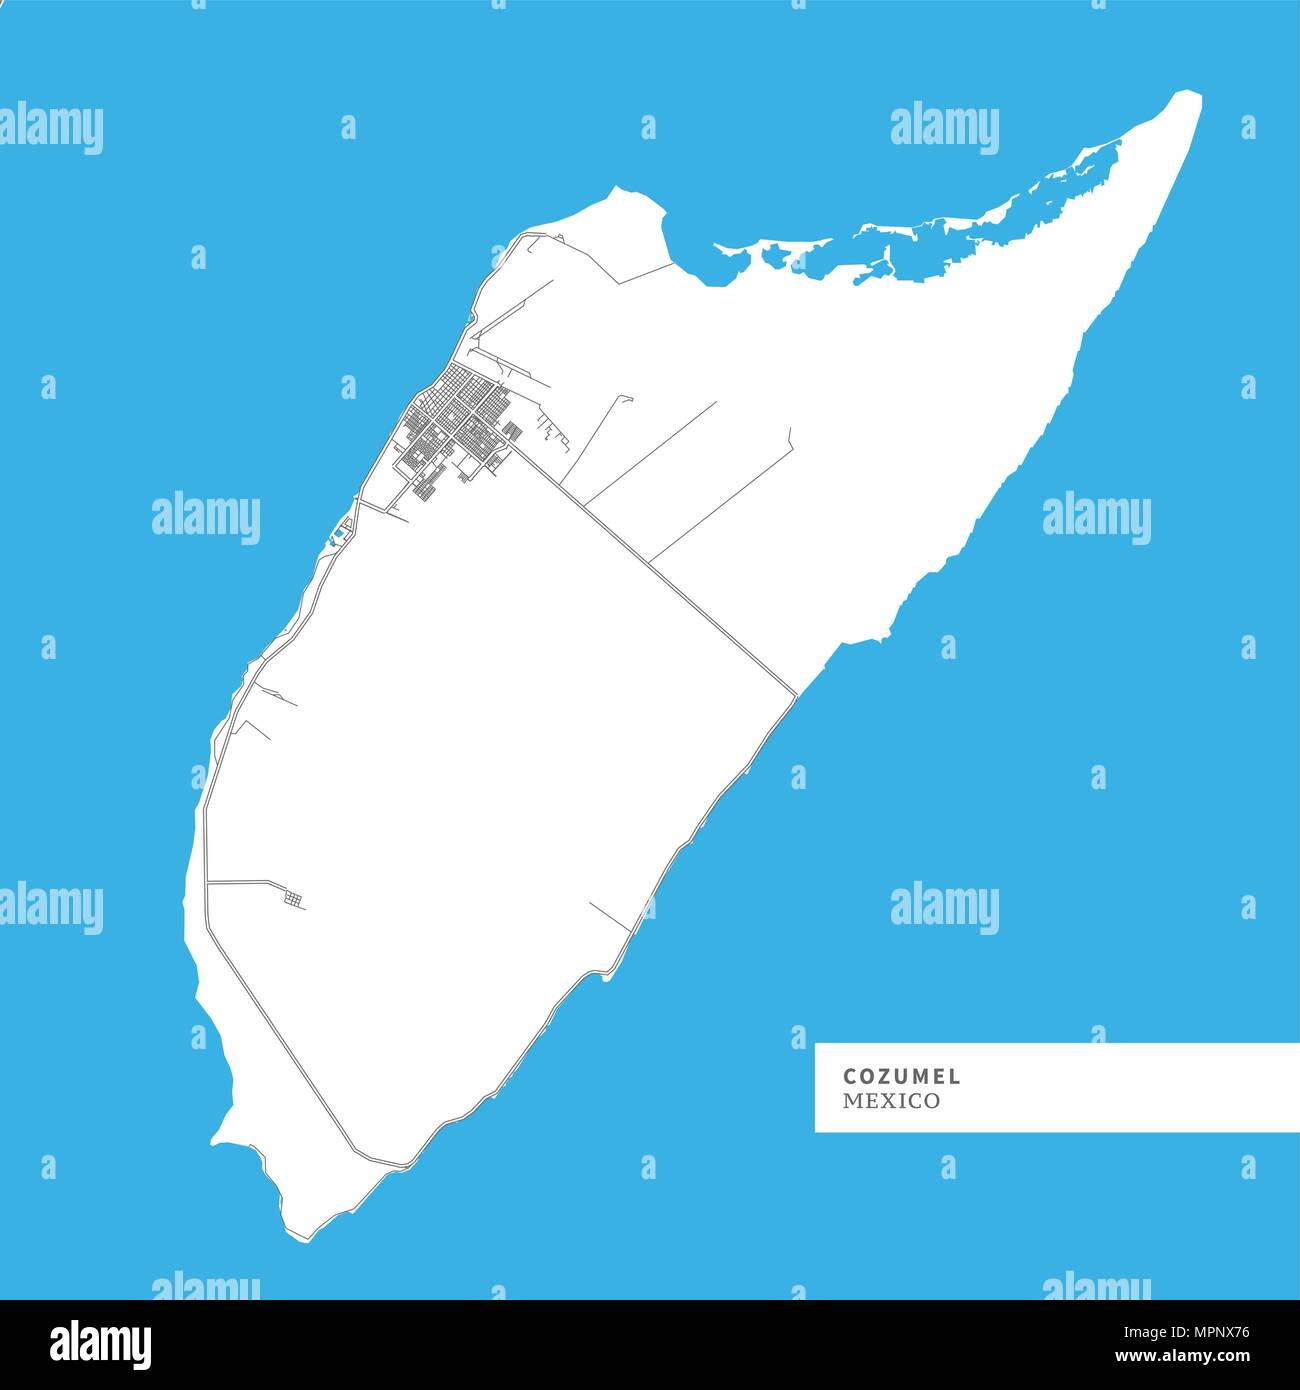 map of cozumel island mexico contains geography outlines for land mass water major roads and minor roads